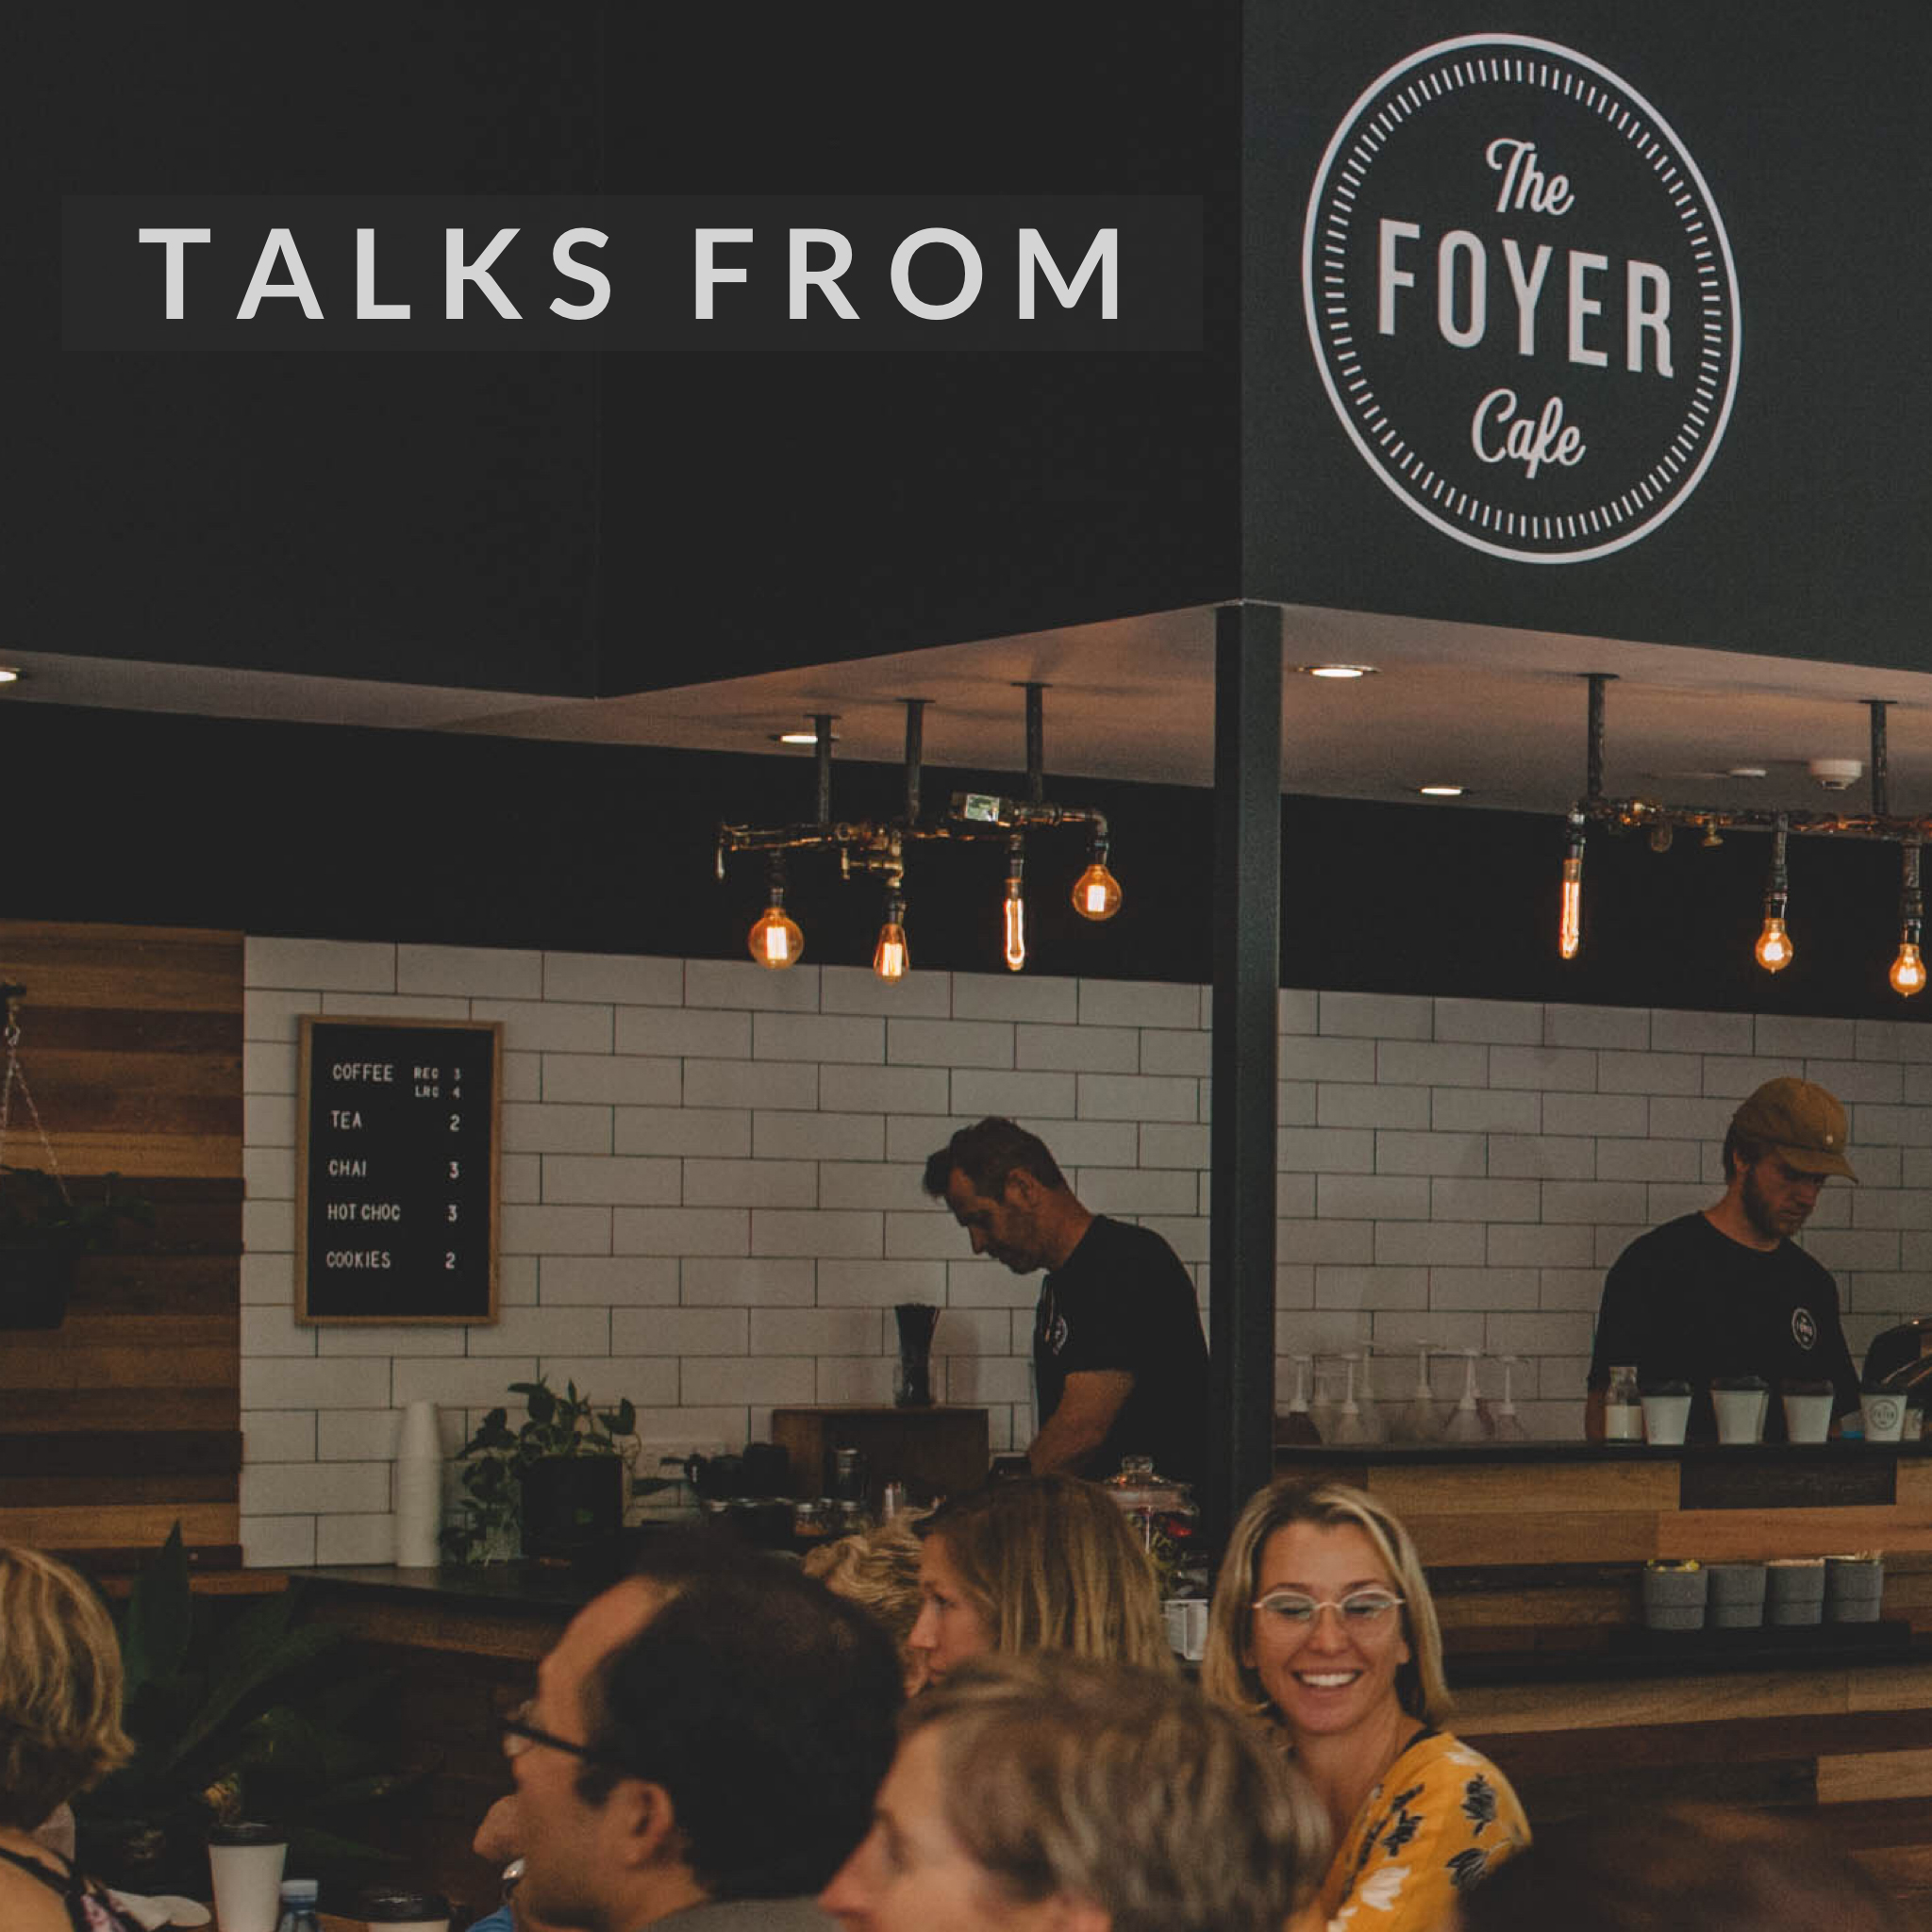 Talks From the Foyer Cafe - Summerfest 2019